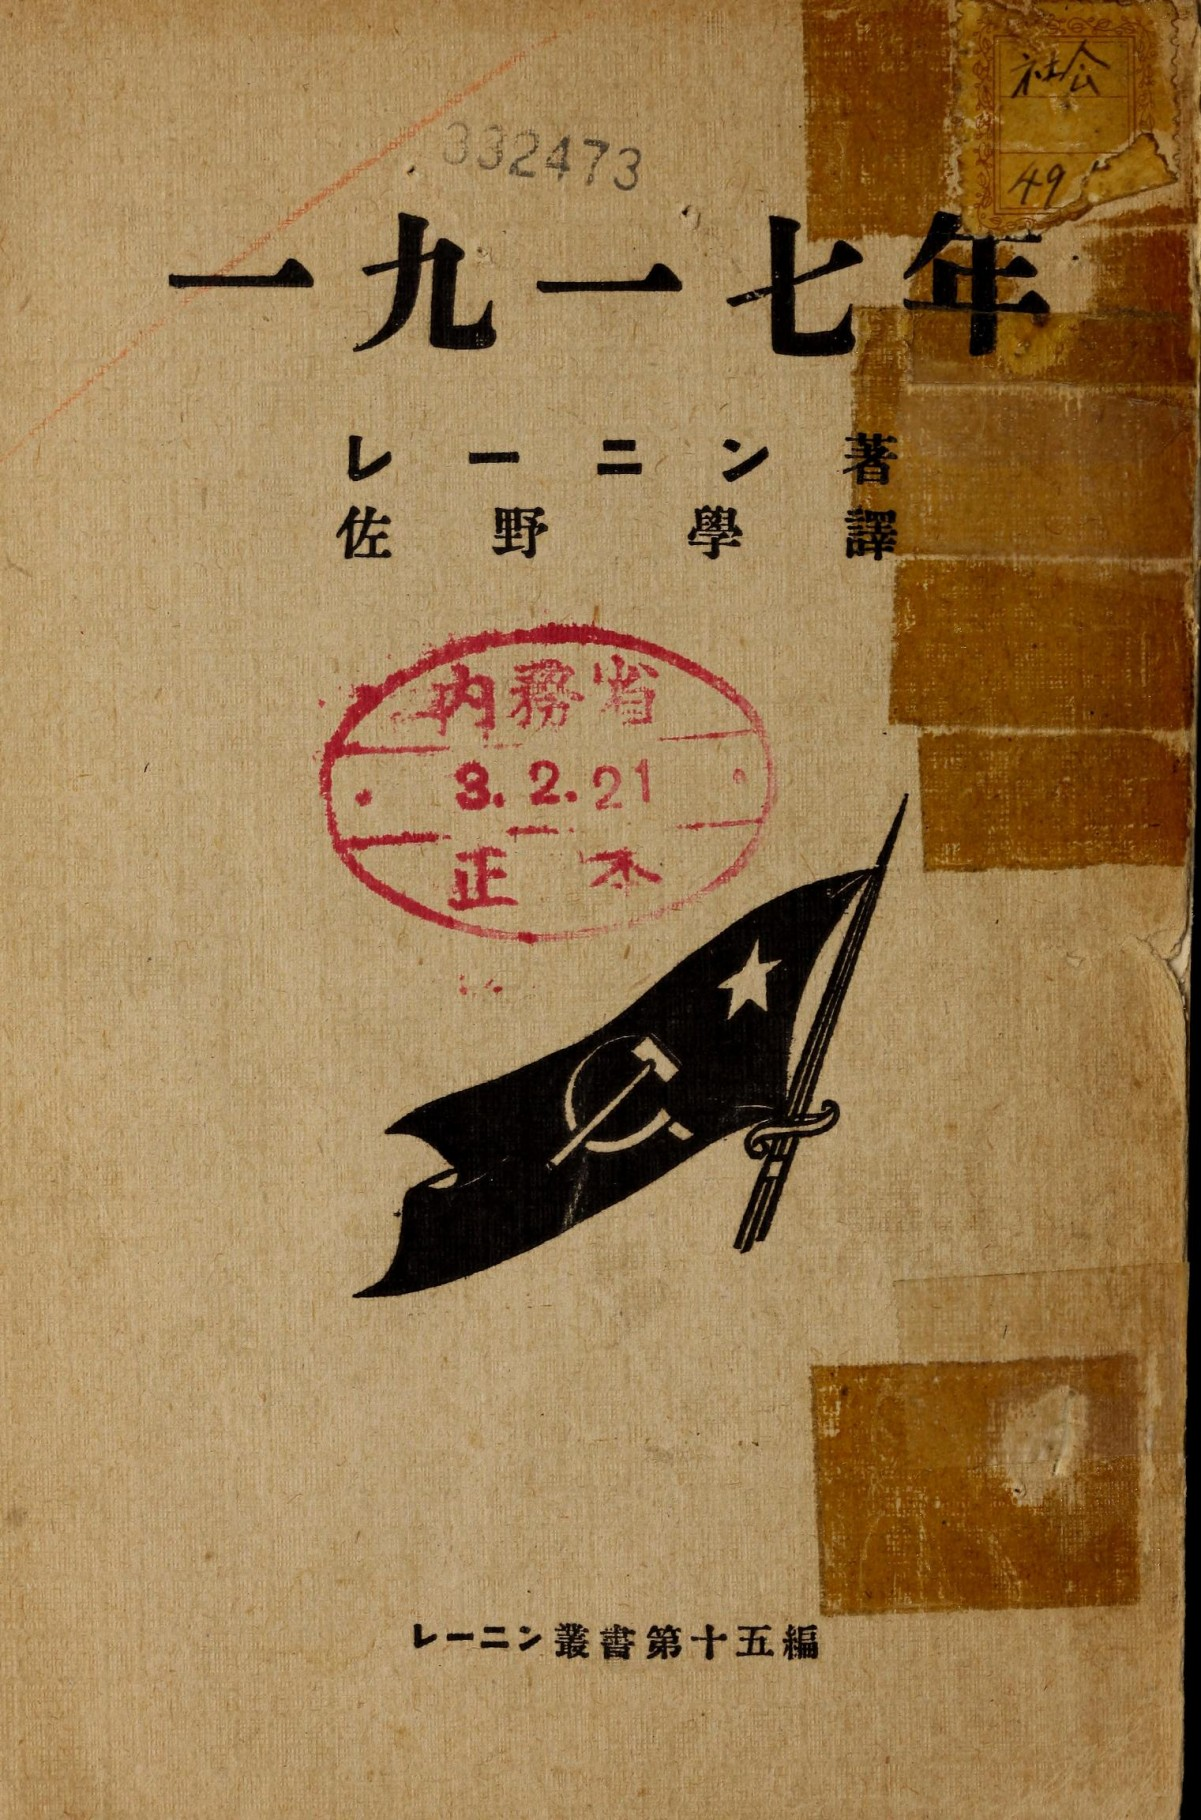 Image from the digitised collection on censorship http://dl.ndl.go.jp/info:ndljp/pid/10298383